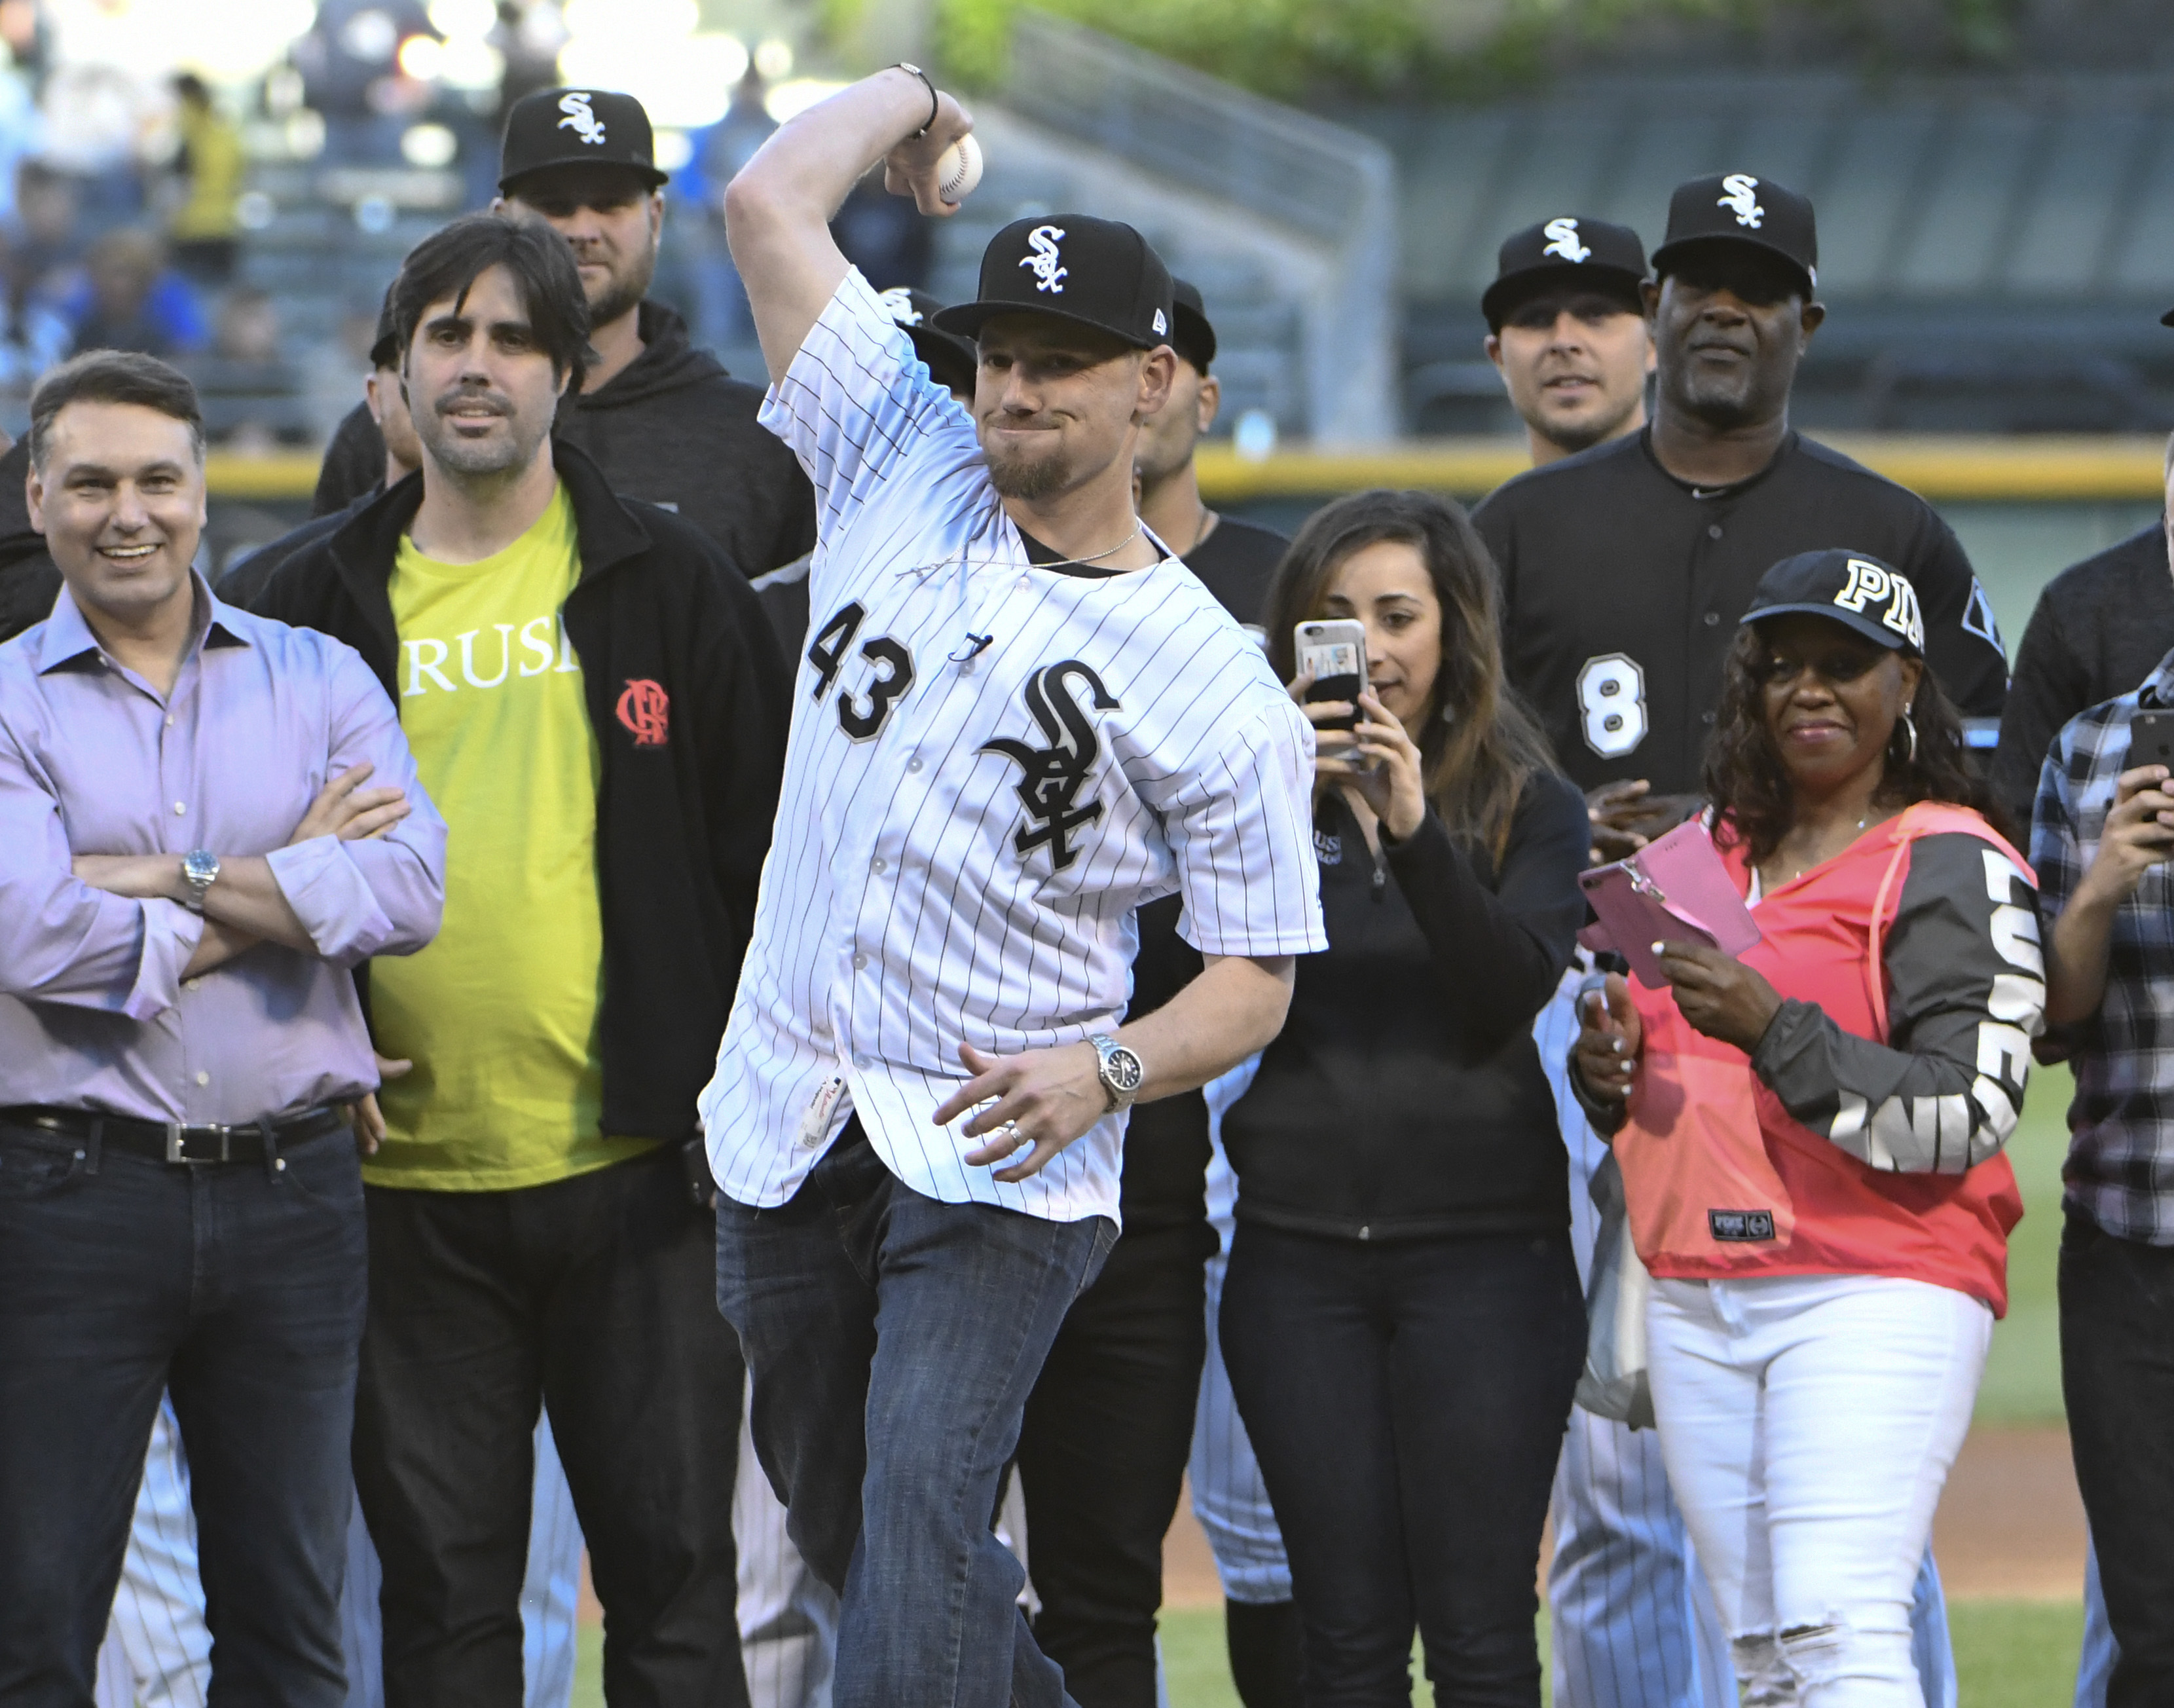 Danny Farquhar was named pitching coach for the White Sox' Class A team at Winston-Salem.